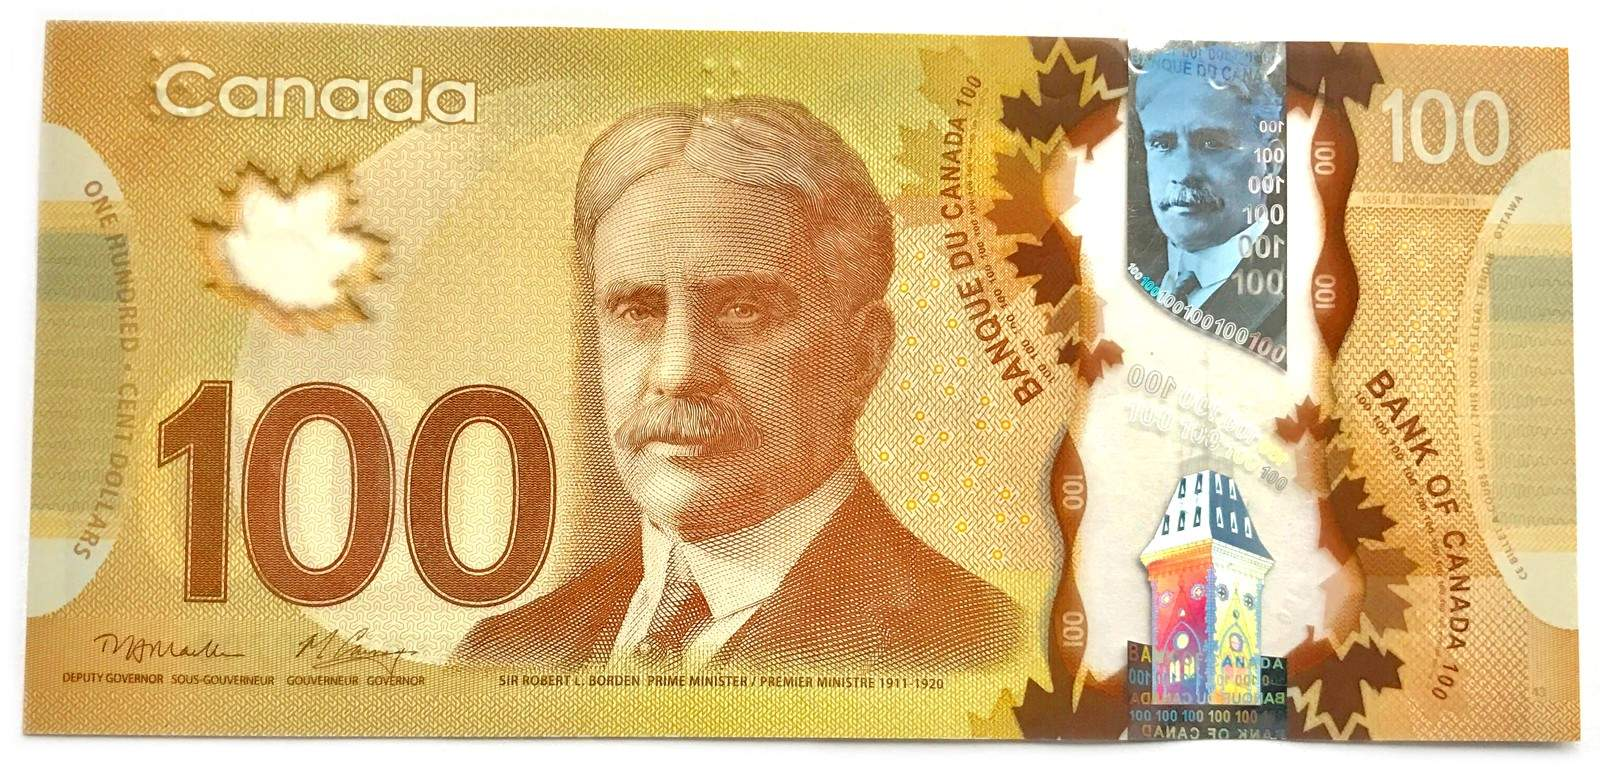 Counterfeiting Large Bills Is A Problem In Canada Which The Reason Why Government Discontinued 1 000 Bill Previously Next Largest